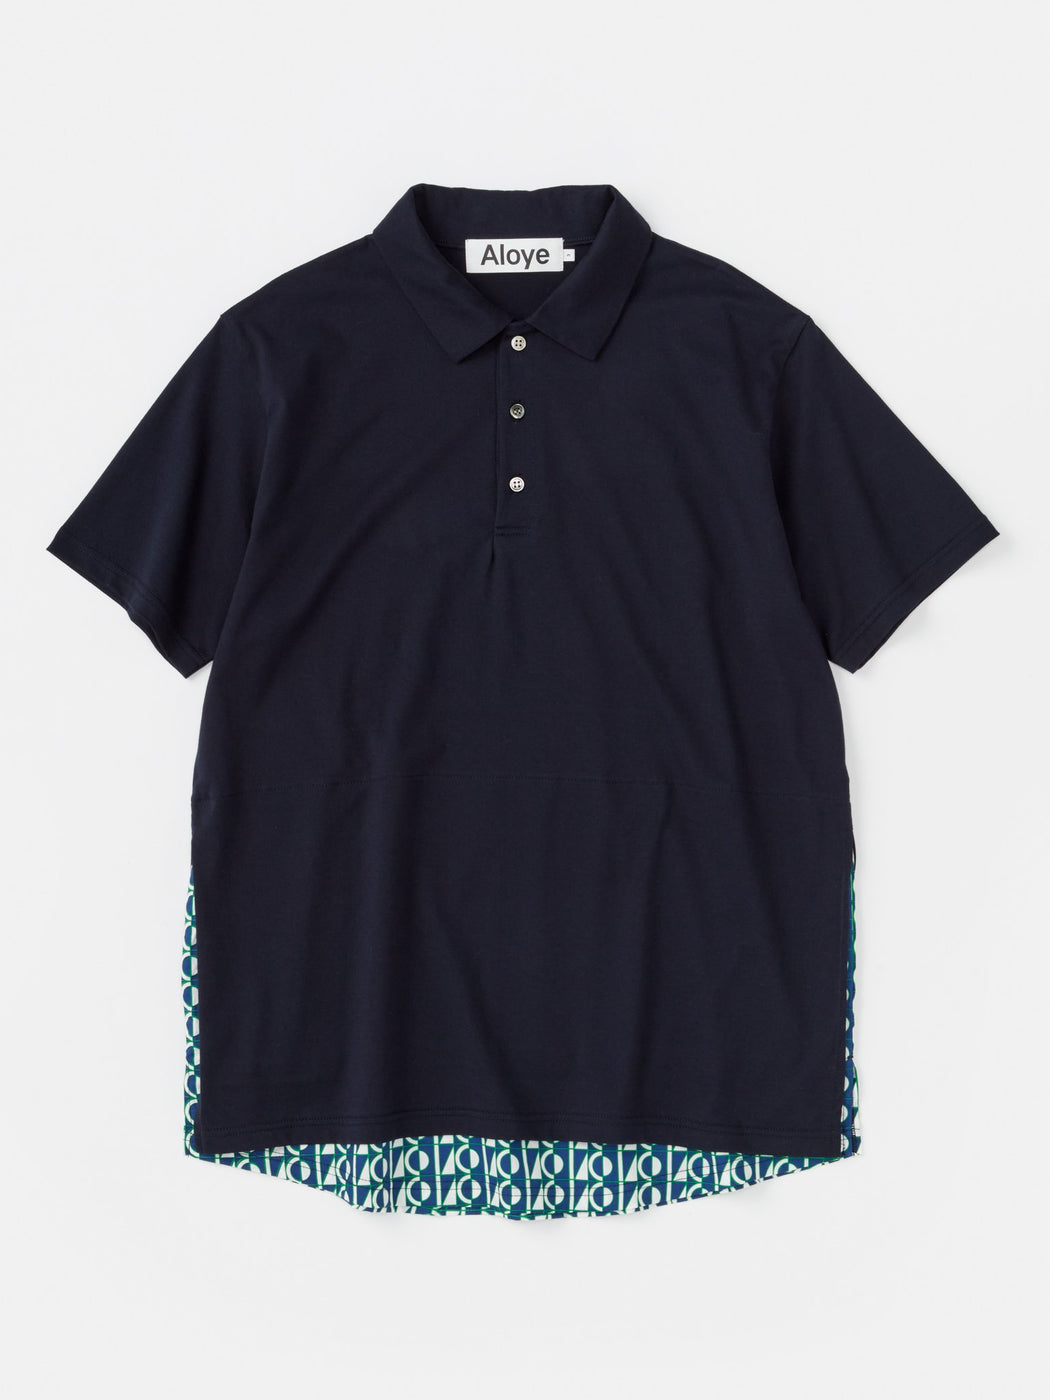 ALOYE Anniversary Textile Short Sleeve Layerd Polo Shirt Color